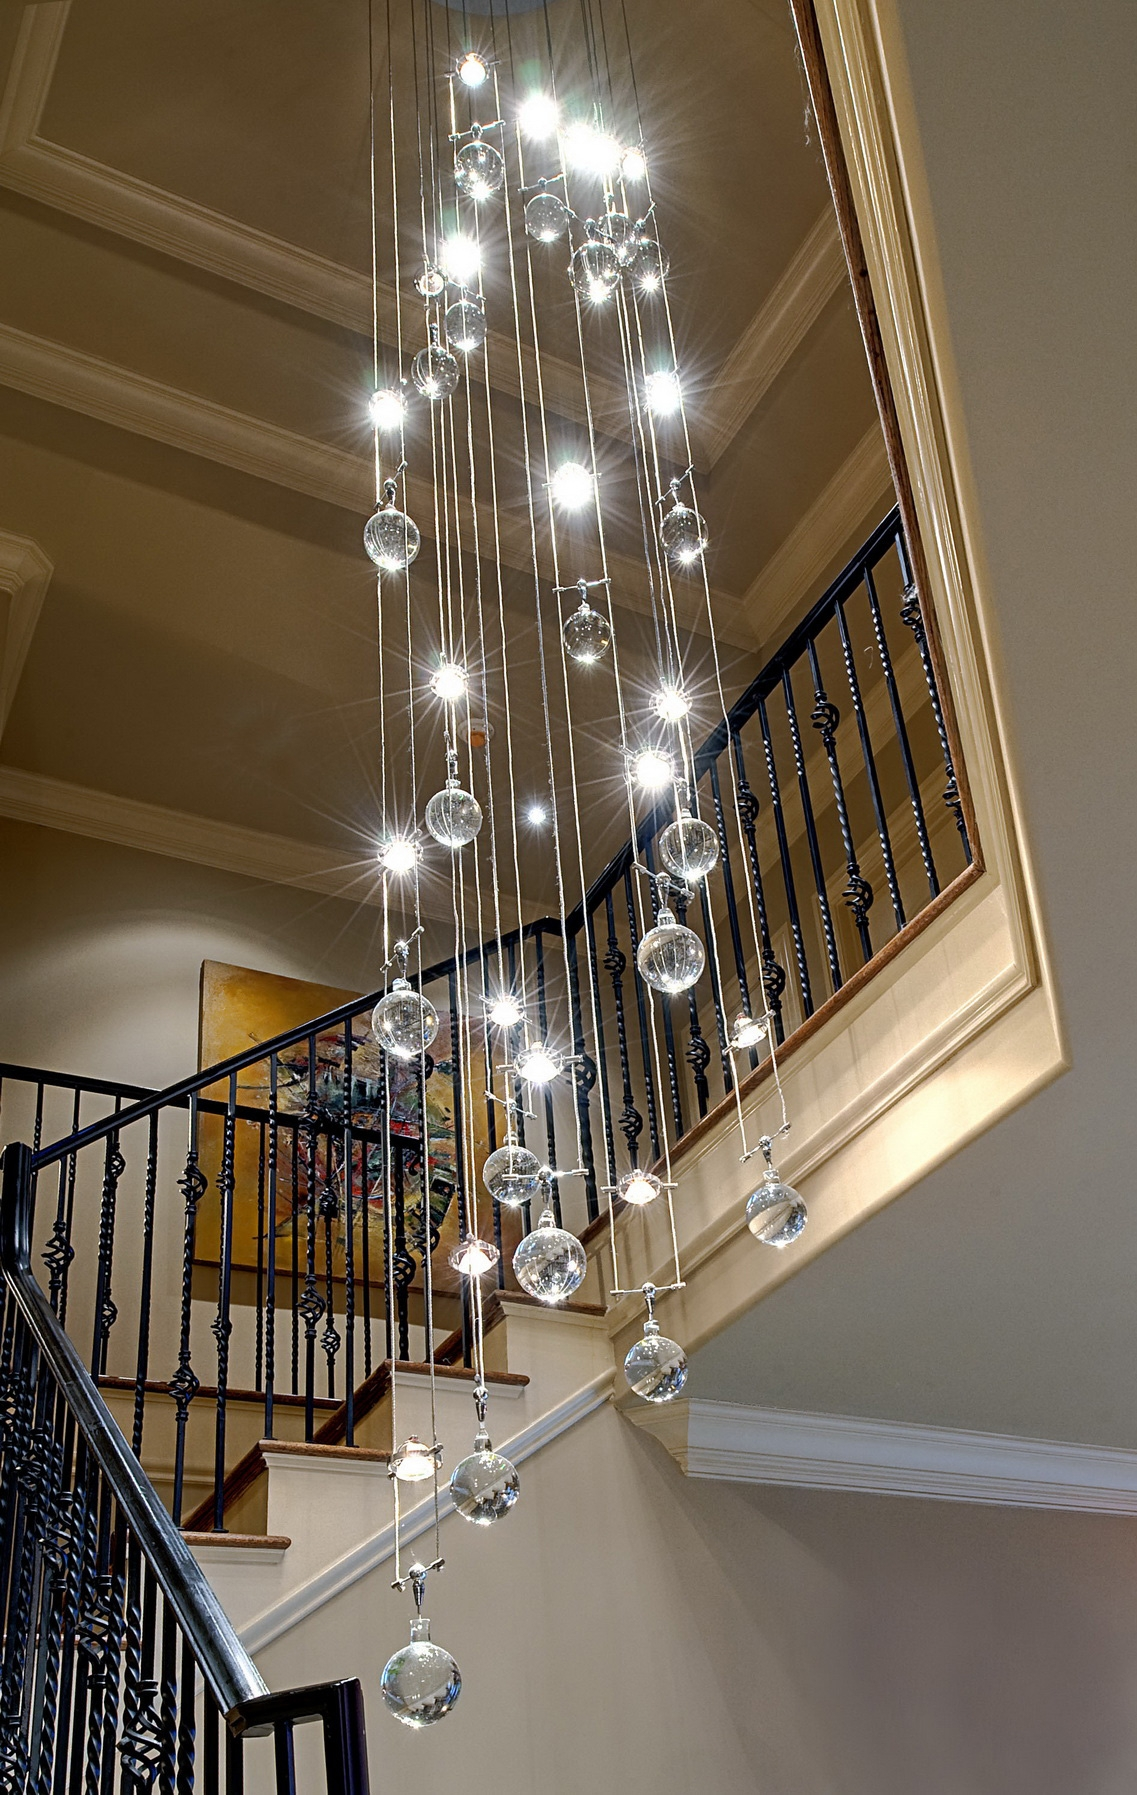 53 Modern Chandelier Lighting Chromecrystalmetal Bubble Shade Pertaining To Bathroom Chandeliers Sale (Image 1 of 15)